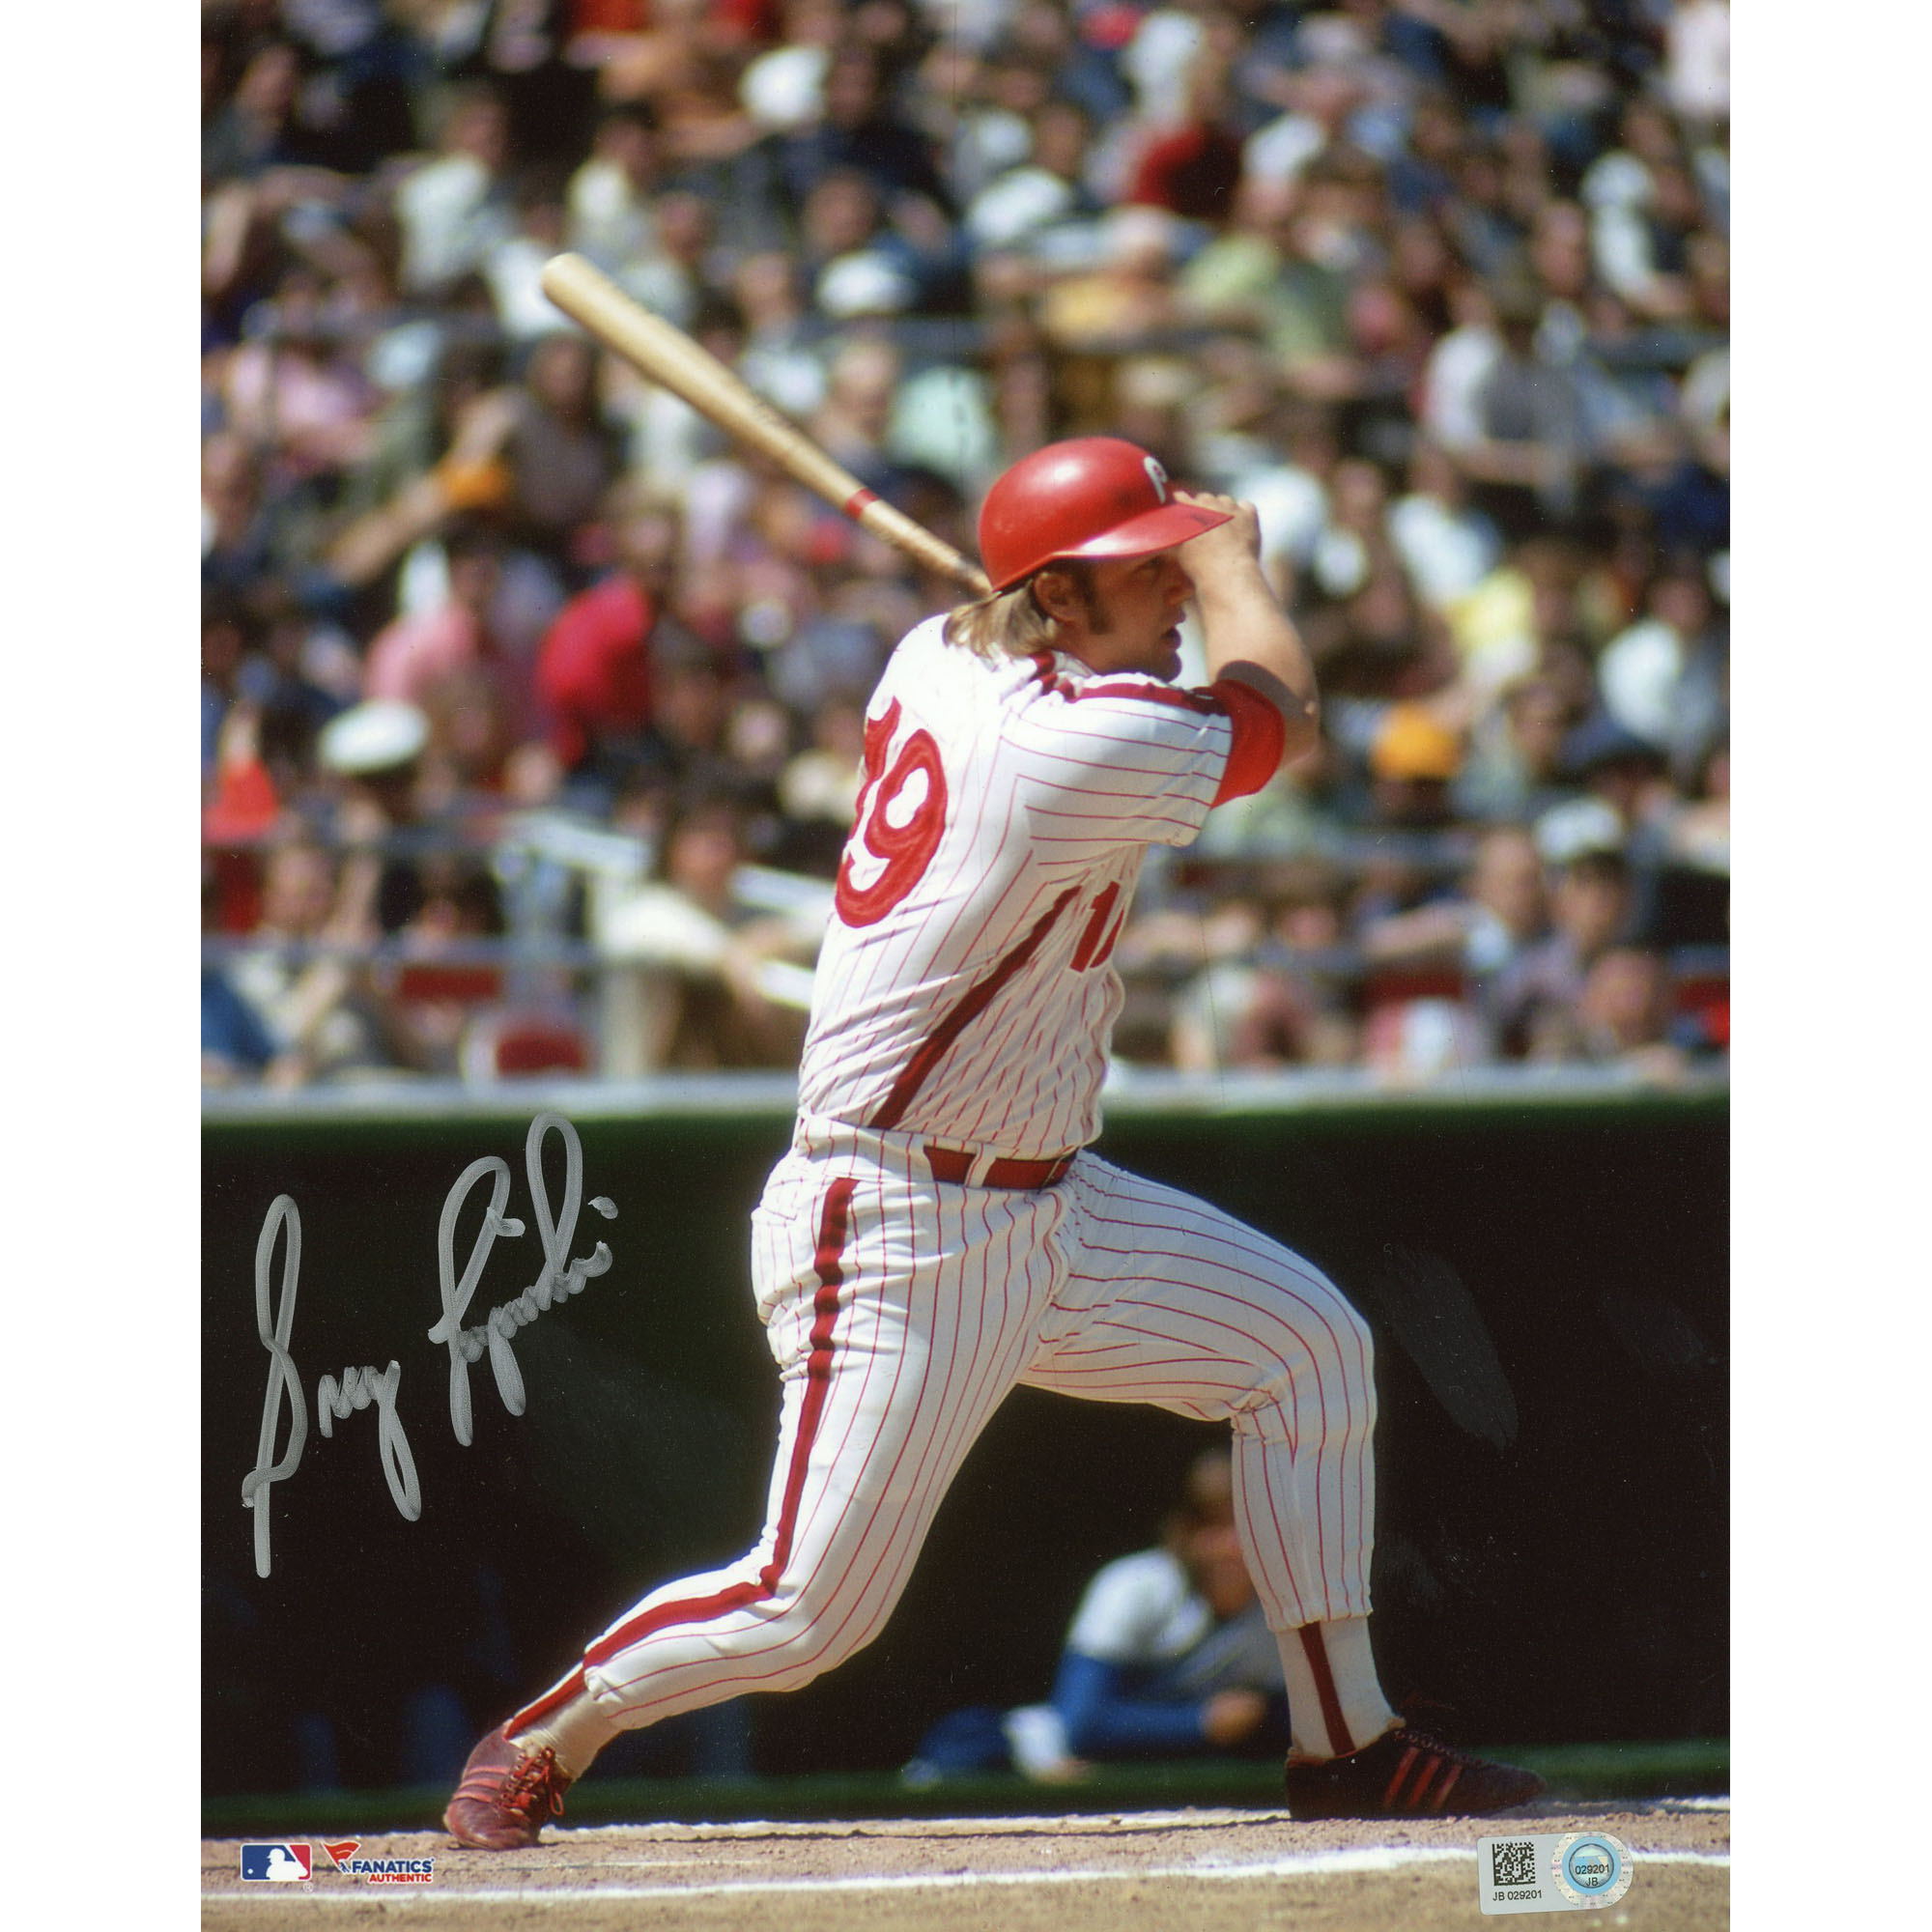 "Greg Luzinski Philadelphia Phillies Fanatics Authentic Autographed 8"" x 10"" White Swinging Photograph - No Size"